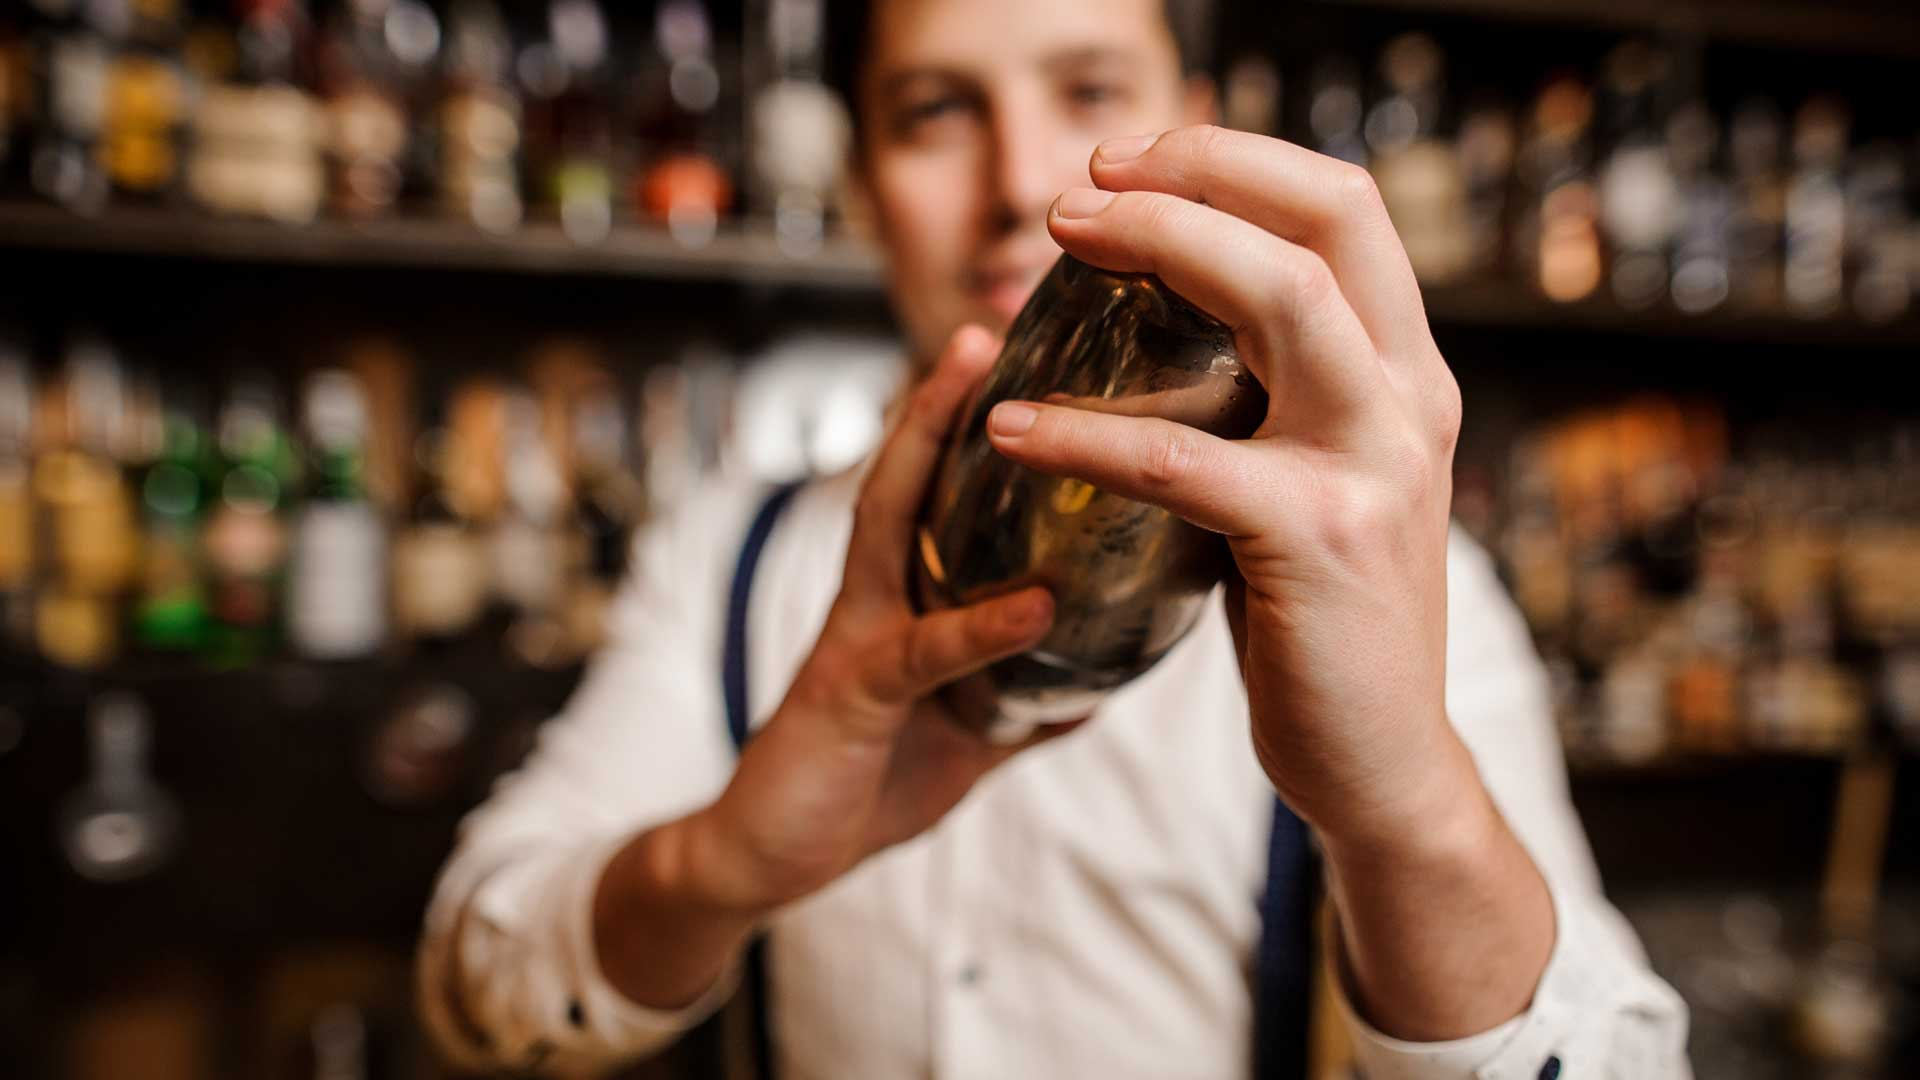 make-me-a-cocktail-ricette-home-bartending-Coqtail-Milano